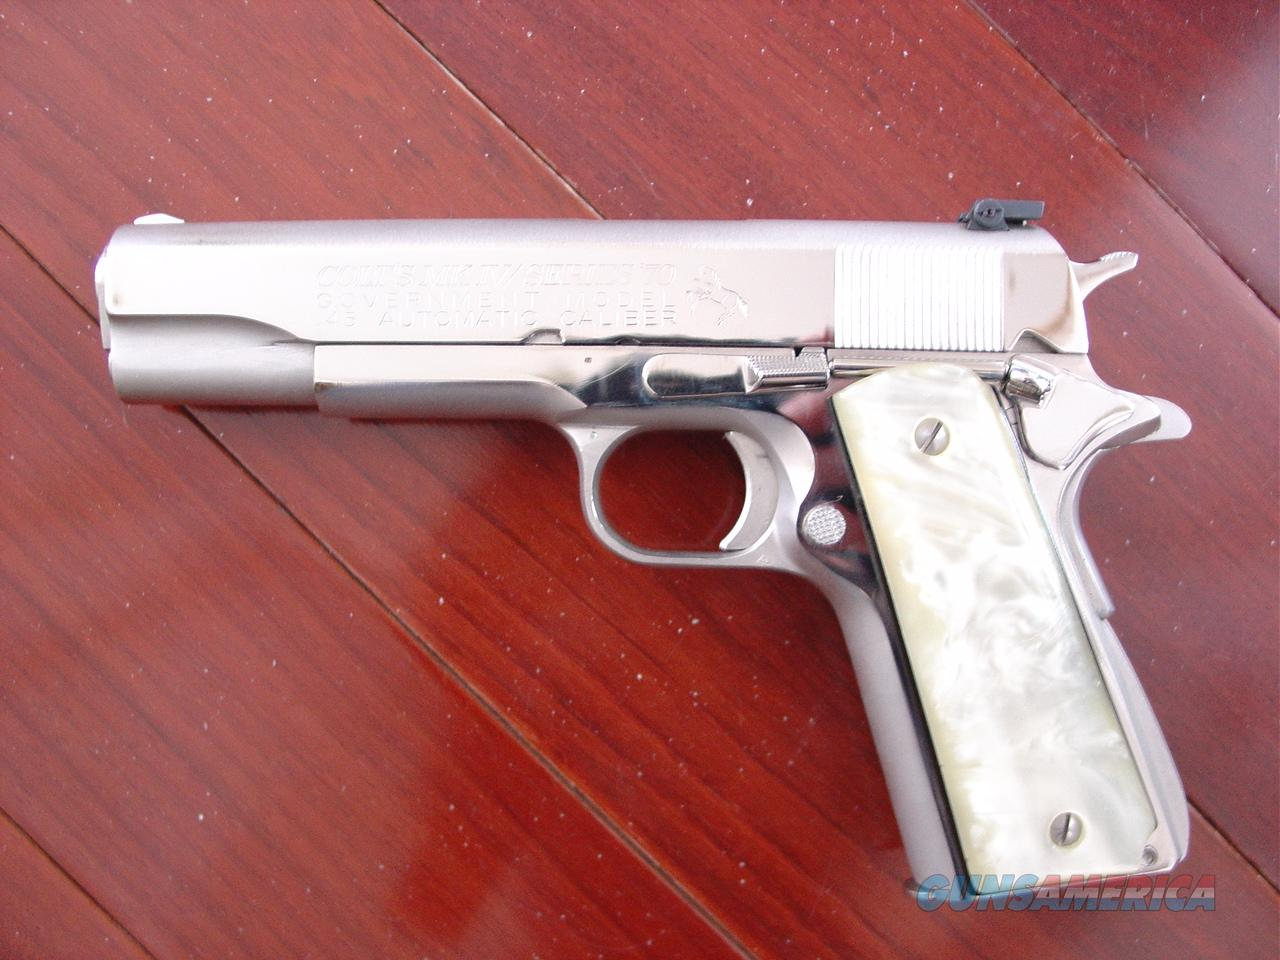 Colt Series 70bright Polished Nickel45acpgov For Sale Kimber 1911 Parts Diagram 7223249